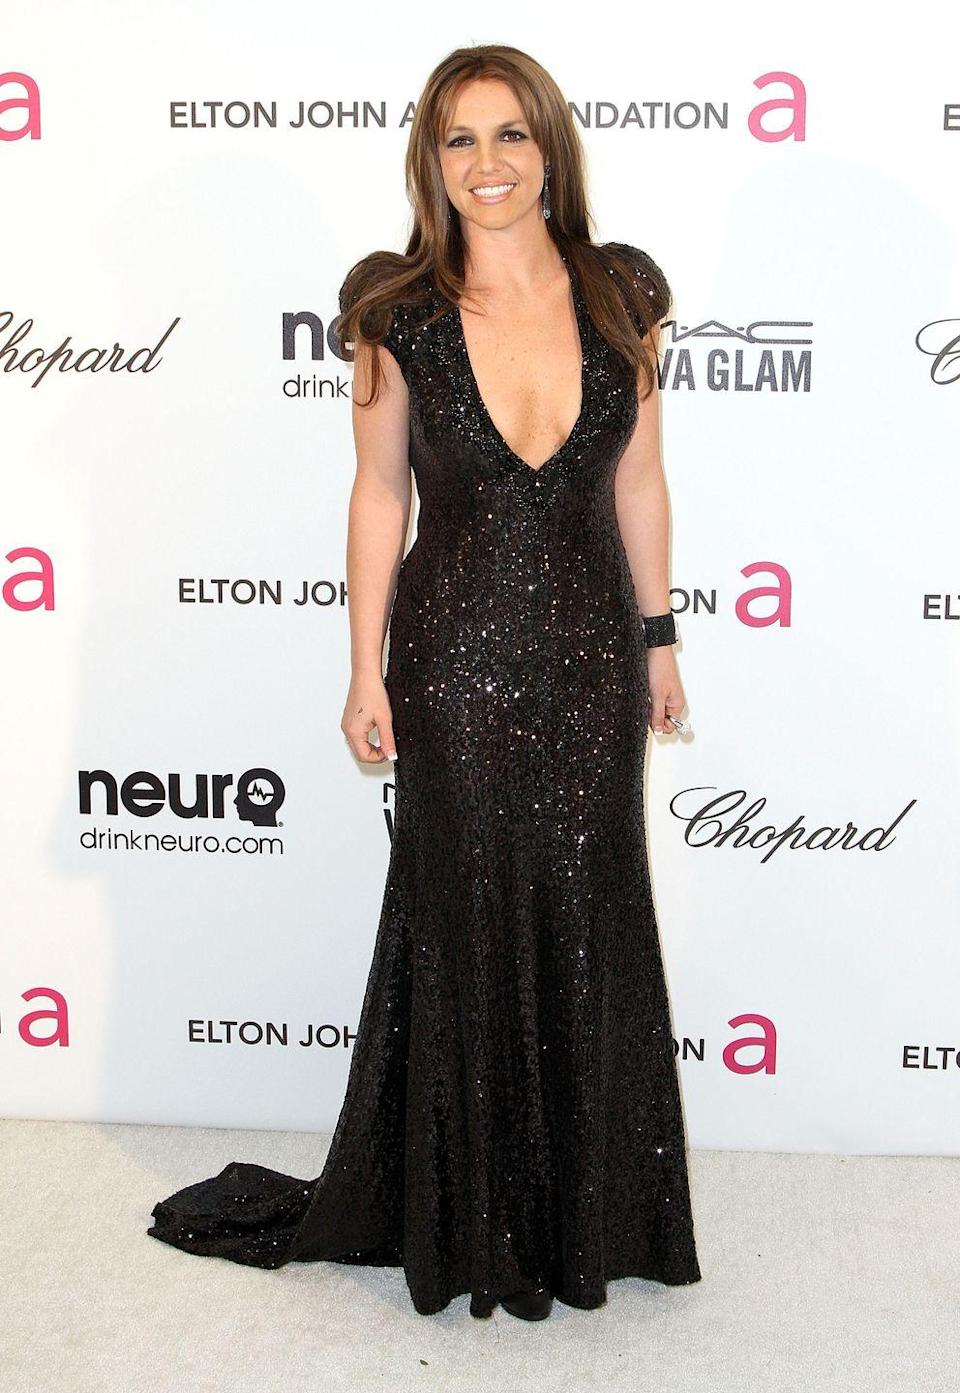 <p>Photos of brunette Britney are few and far between, but j'adore this one of her with a stunning dark and sparkly gown to match her equally dark do. </p>